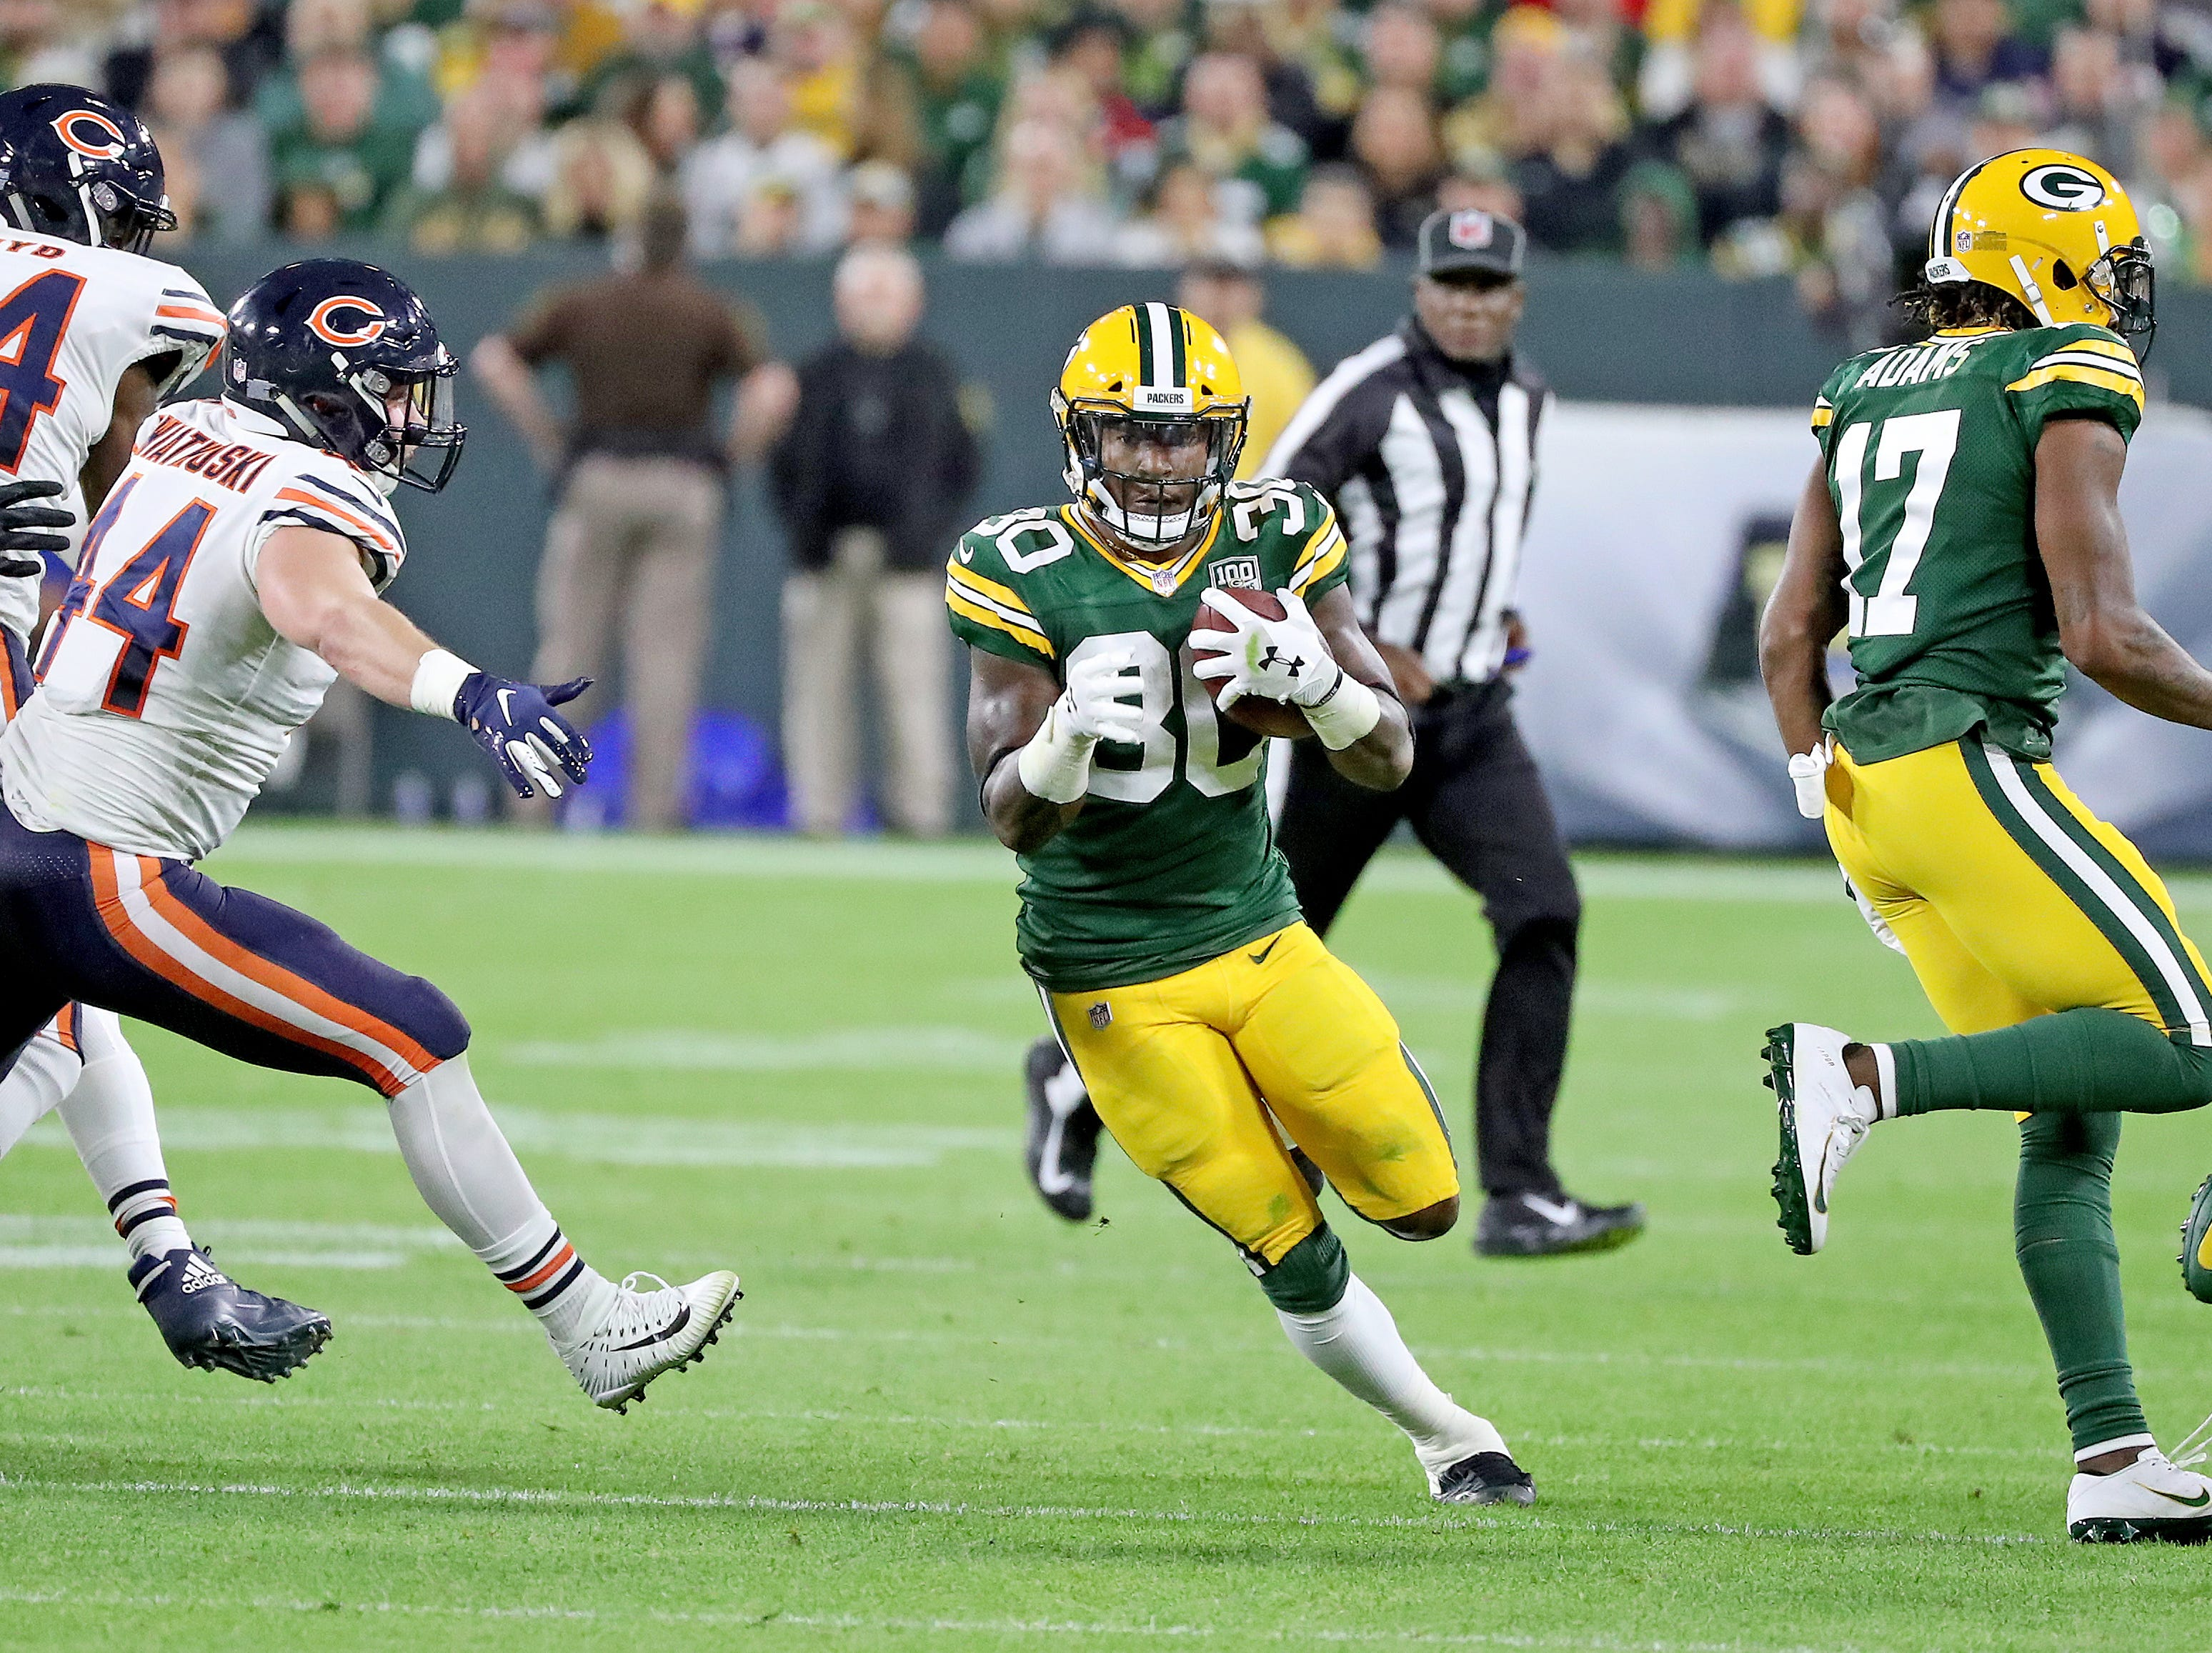 Green Bay Packers running back Jamaal Williams (30) runs against the Chicago Bears Sunday, September 9, 2018 at Lambeau Field in Green Bay, Wis.